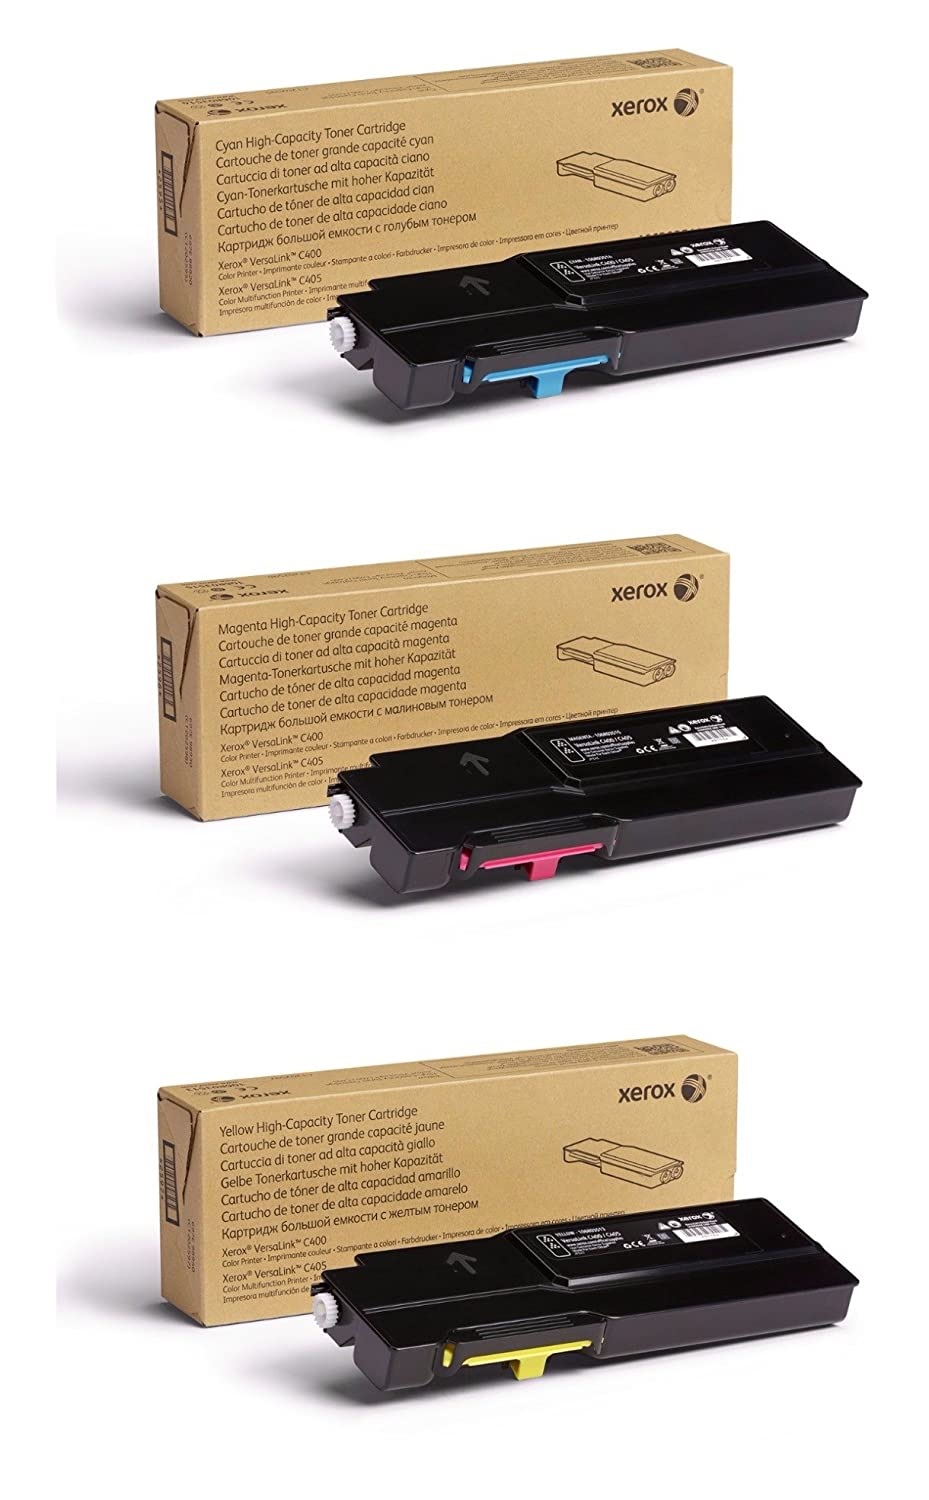 Amazon.com: Xerox Cyan/Magenta/Yellow High Capacity Toner ...